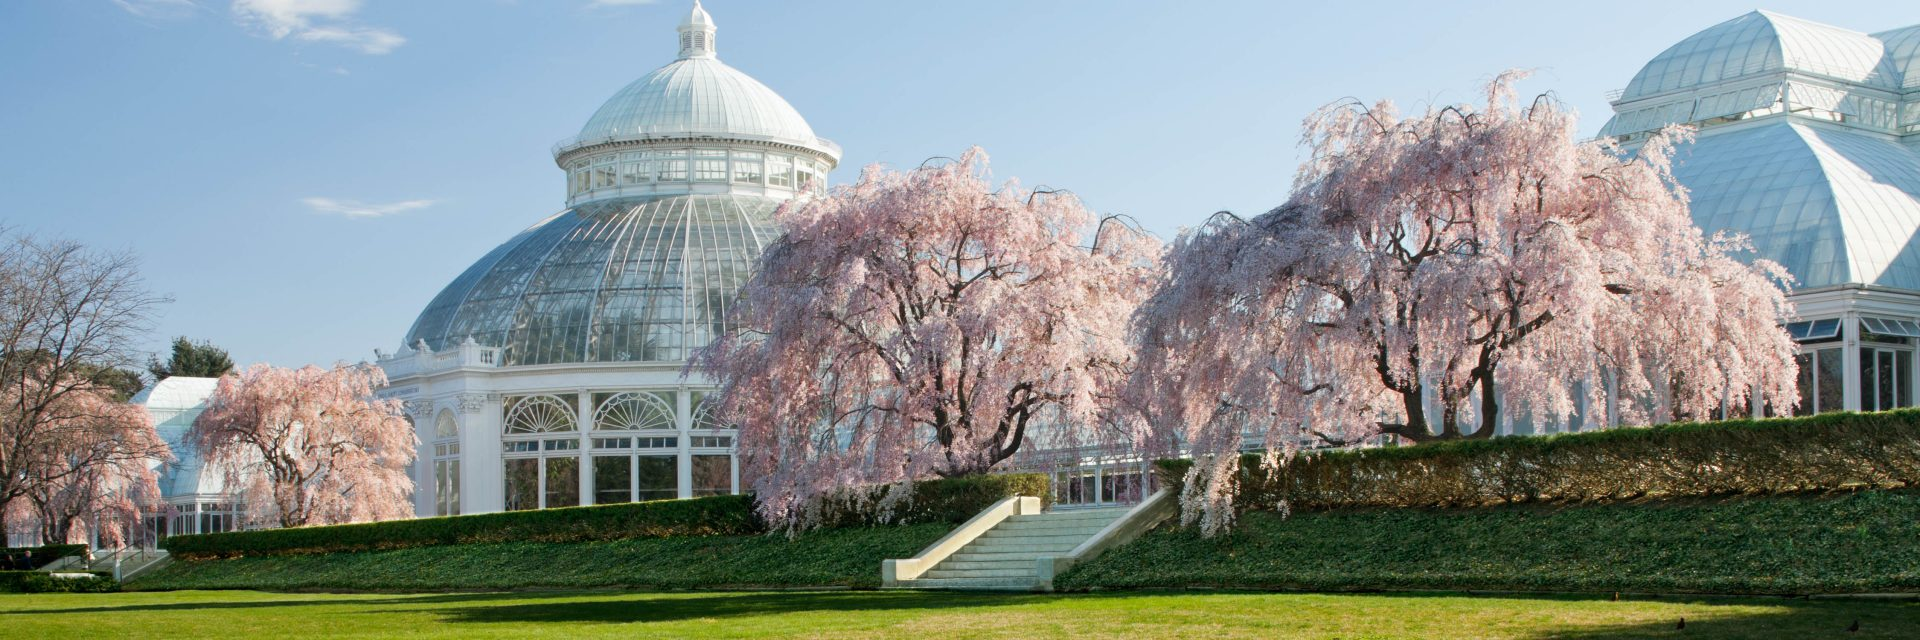 One Of The Most Beautiful Hearing Loss Friendly Gardens Is The New York Botanical  Gardens